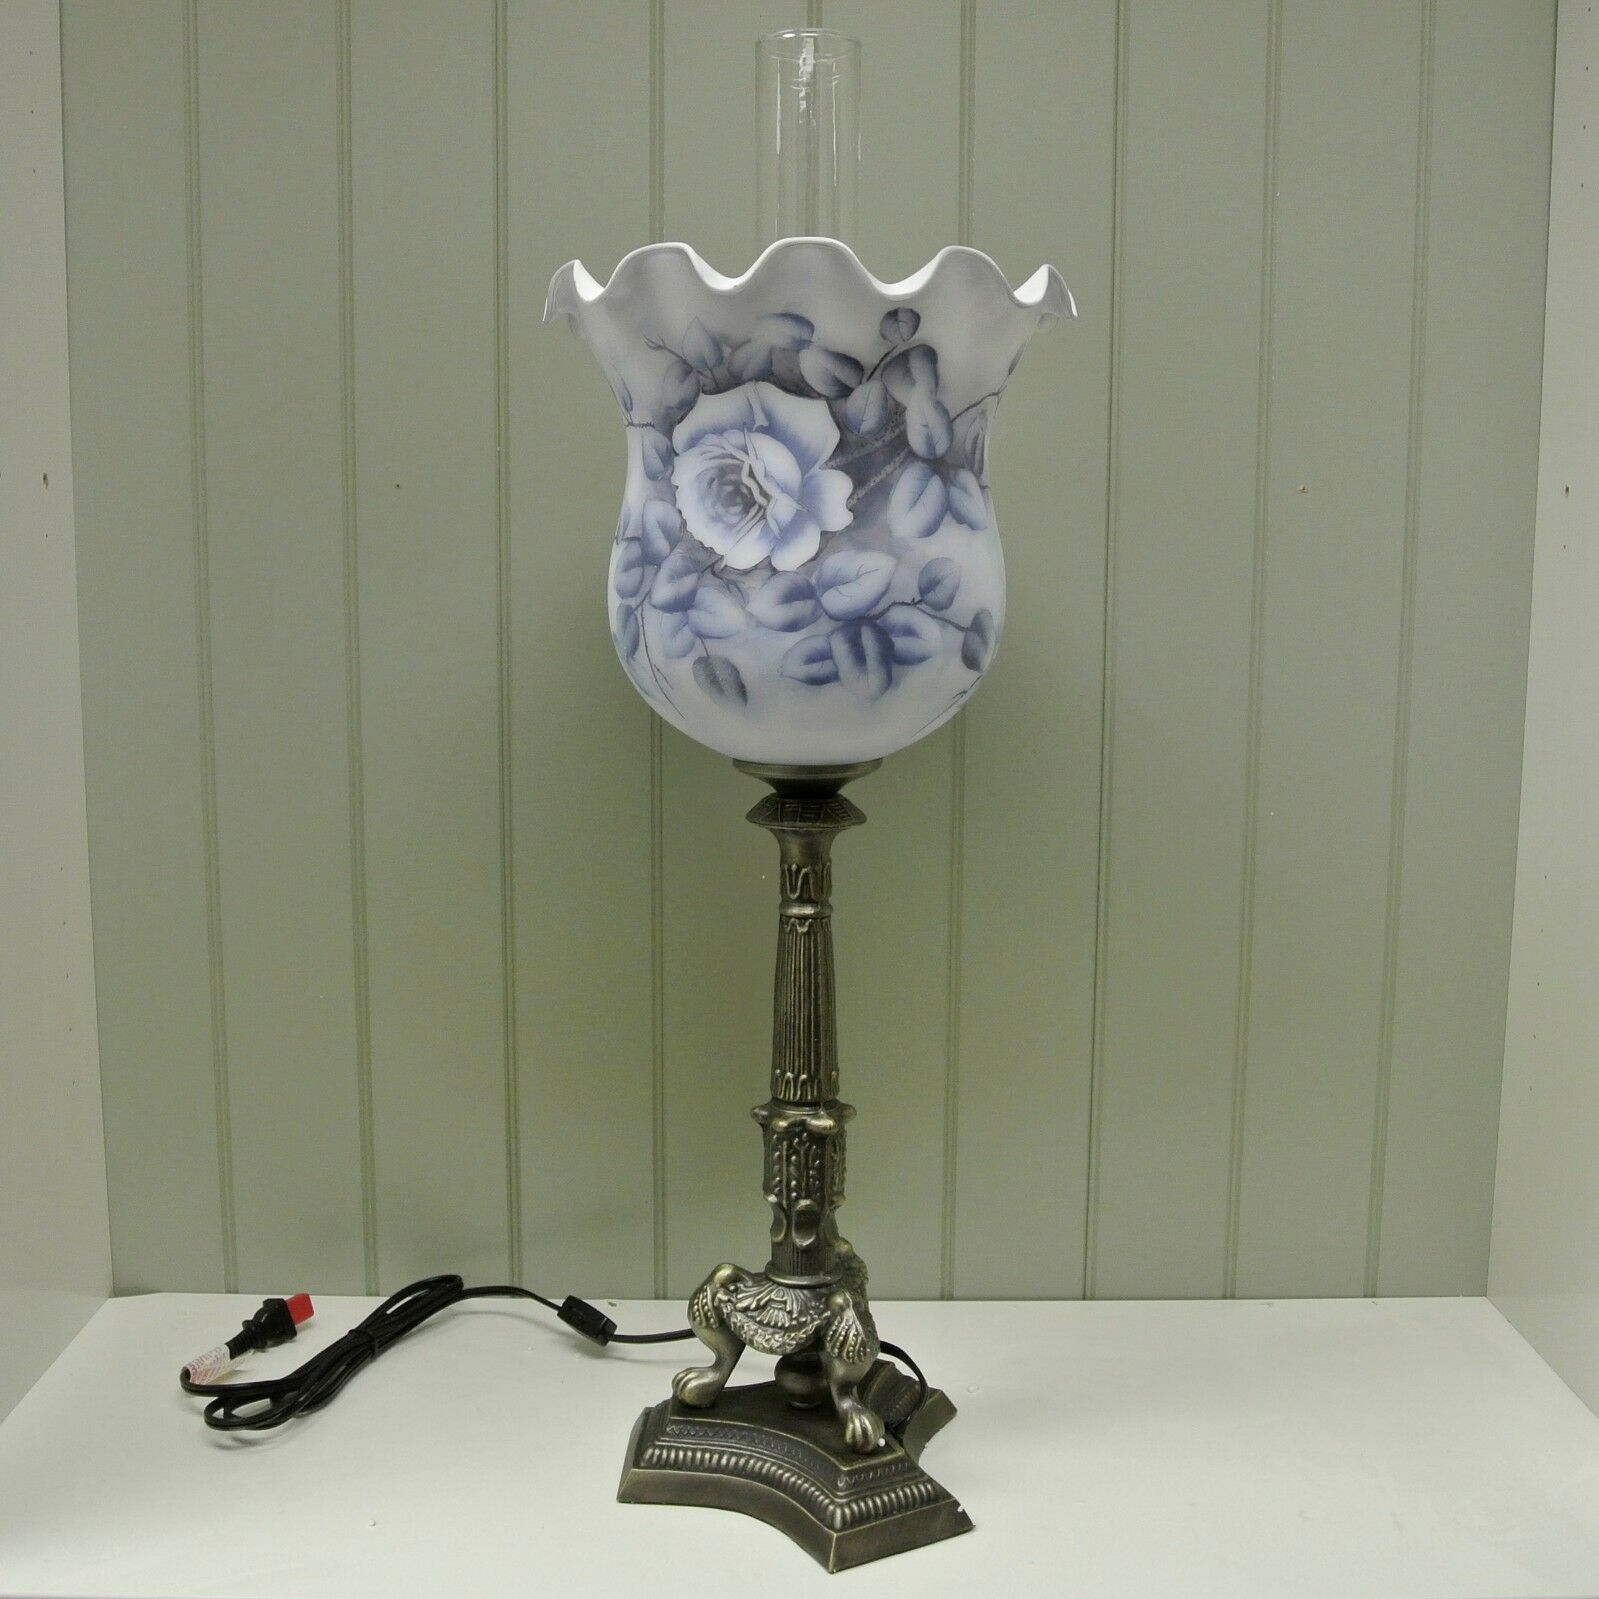 Kaldun & Bogle Glass Blue Rose Bell Ruffle w/ Hurricane Lamp